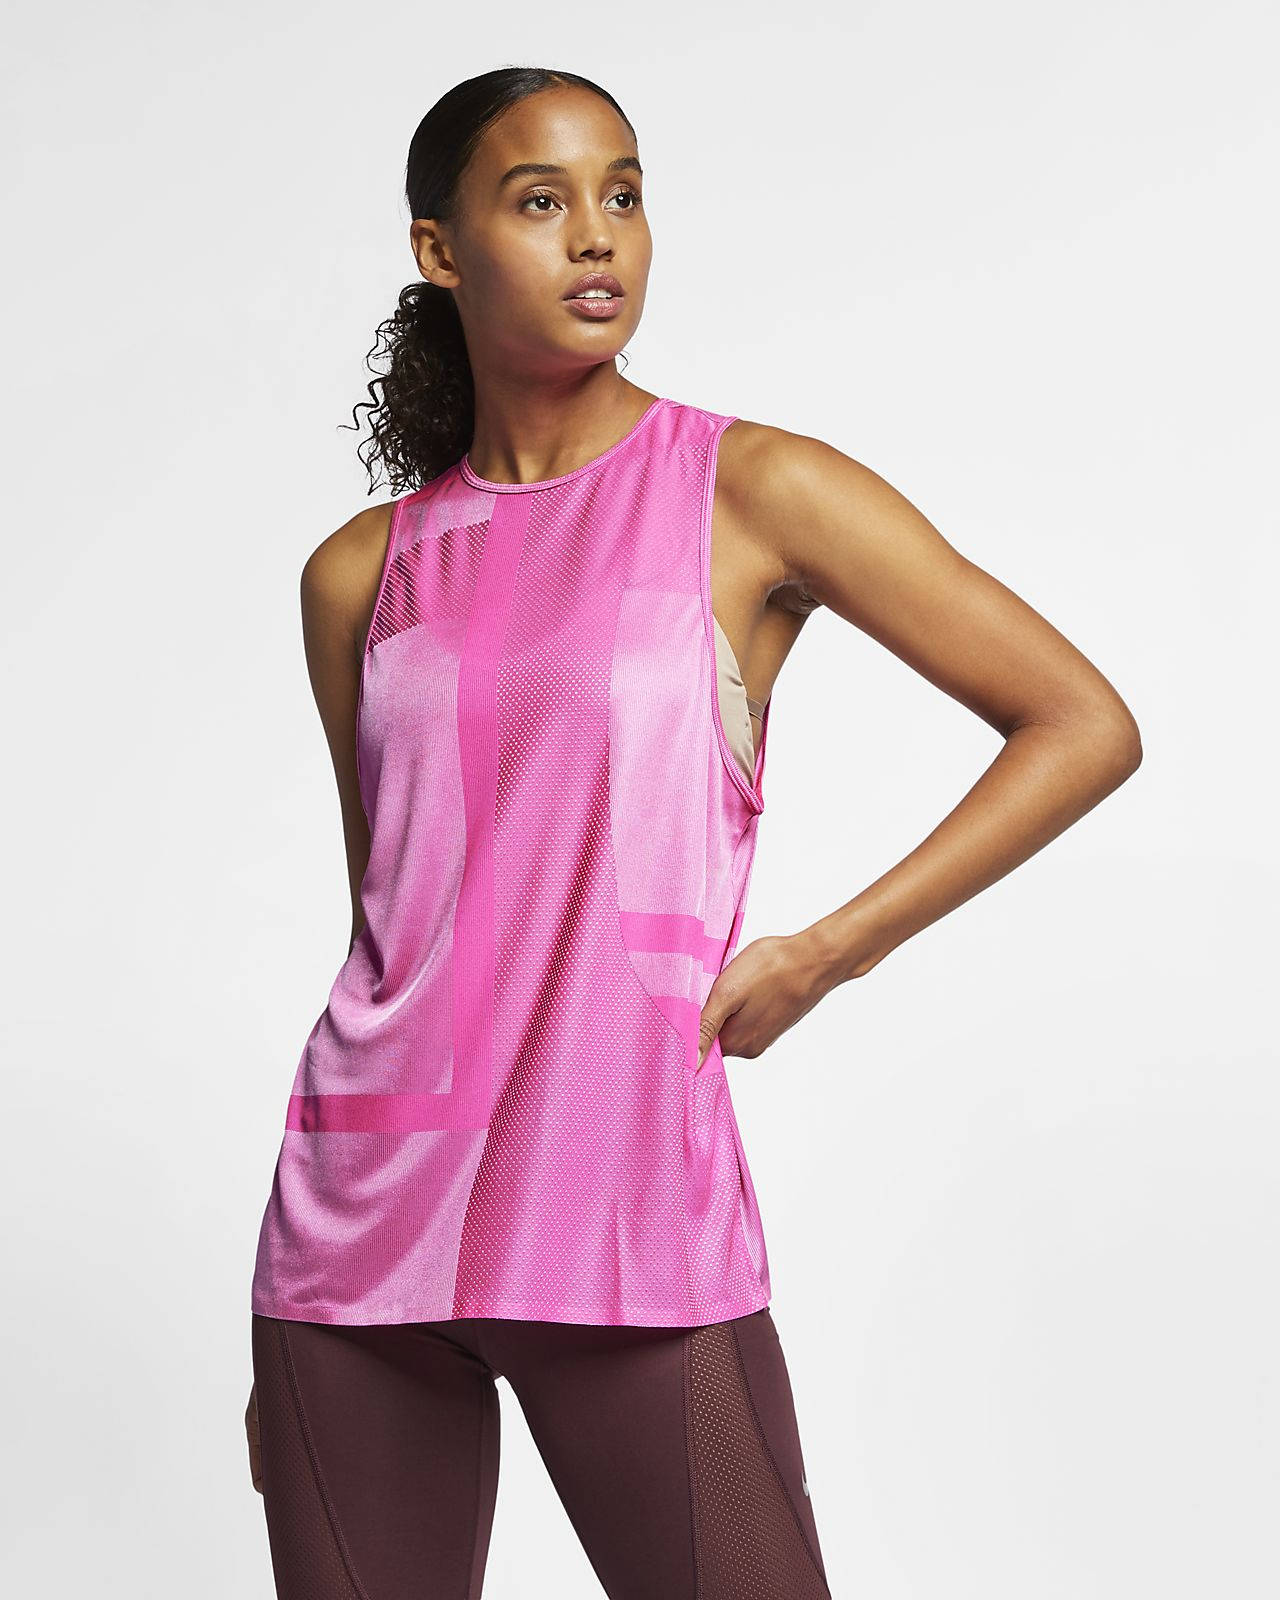 Nike Women's Knit Training Tank